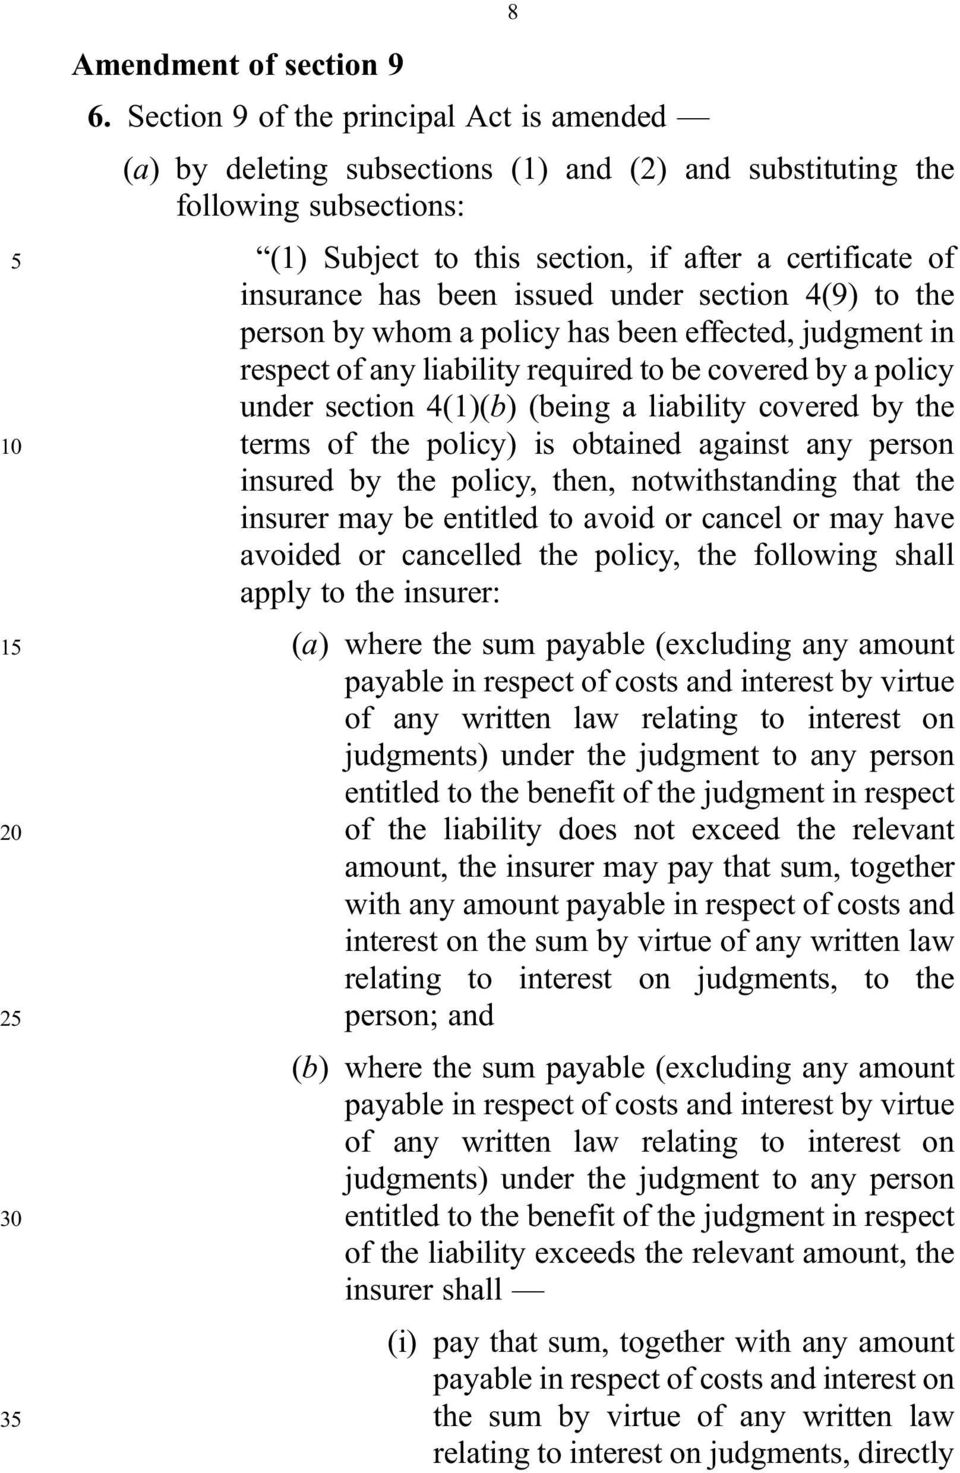 been issued under section 4(9) to the person by whom a policy has been effected, judgment in respect of any liability required to be covered by a policy under section 4(1)(b) (being a liability